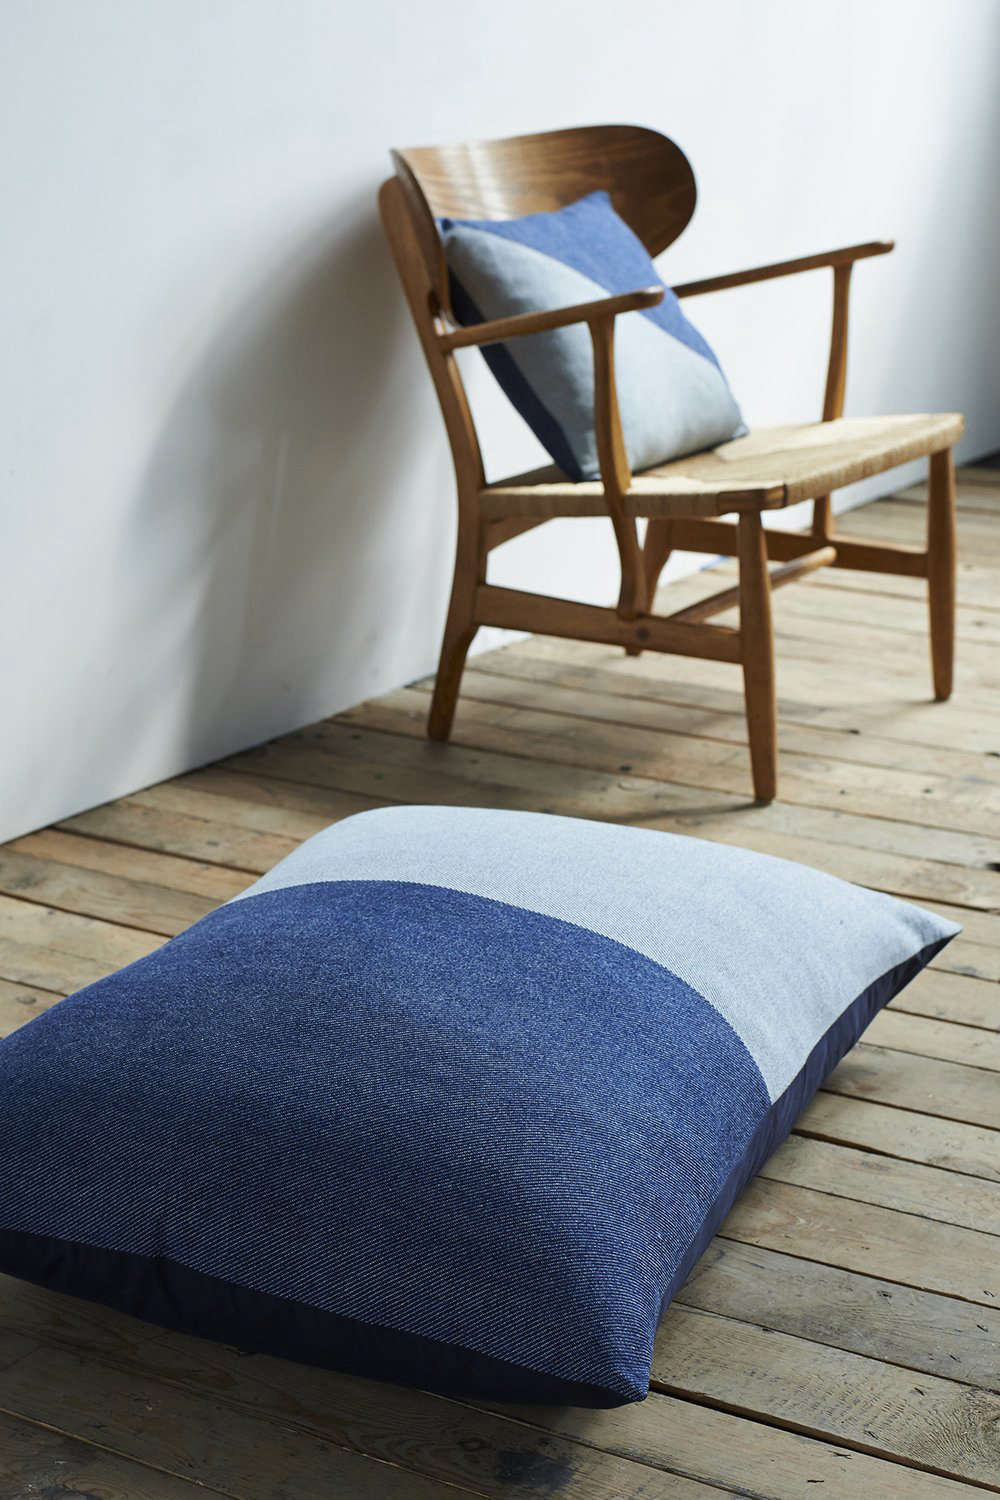 The generously proportioned Indigo Cotton Floor Cushion is backed with a heavy navy cotton drill; £0 ($8.36).